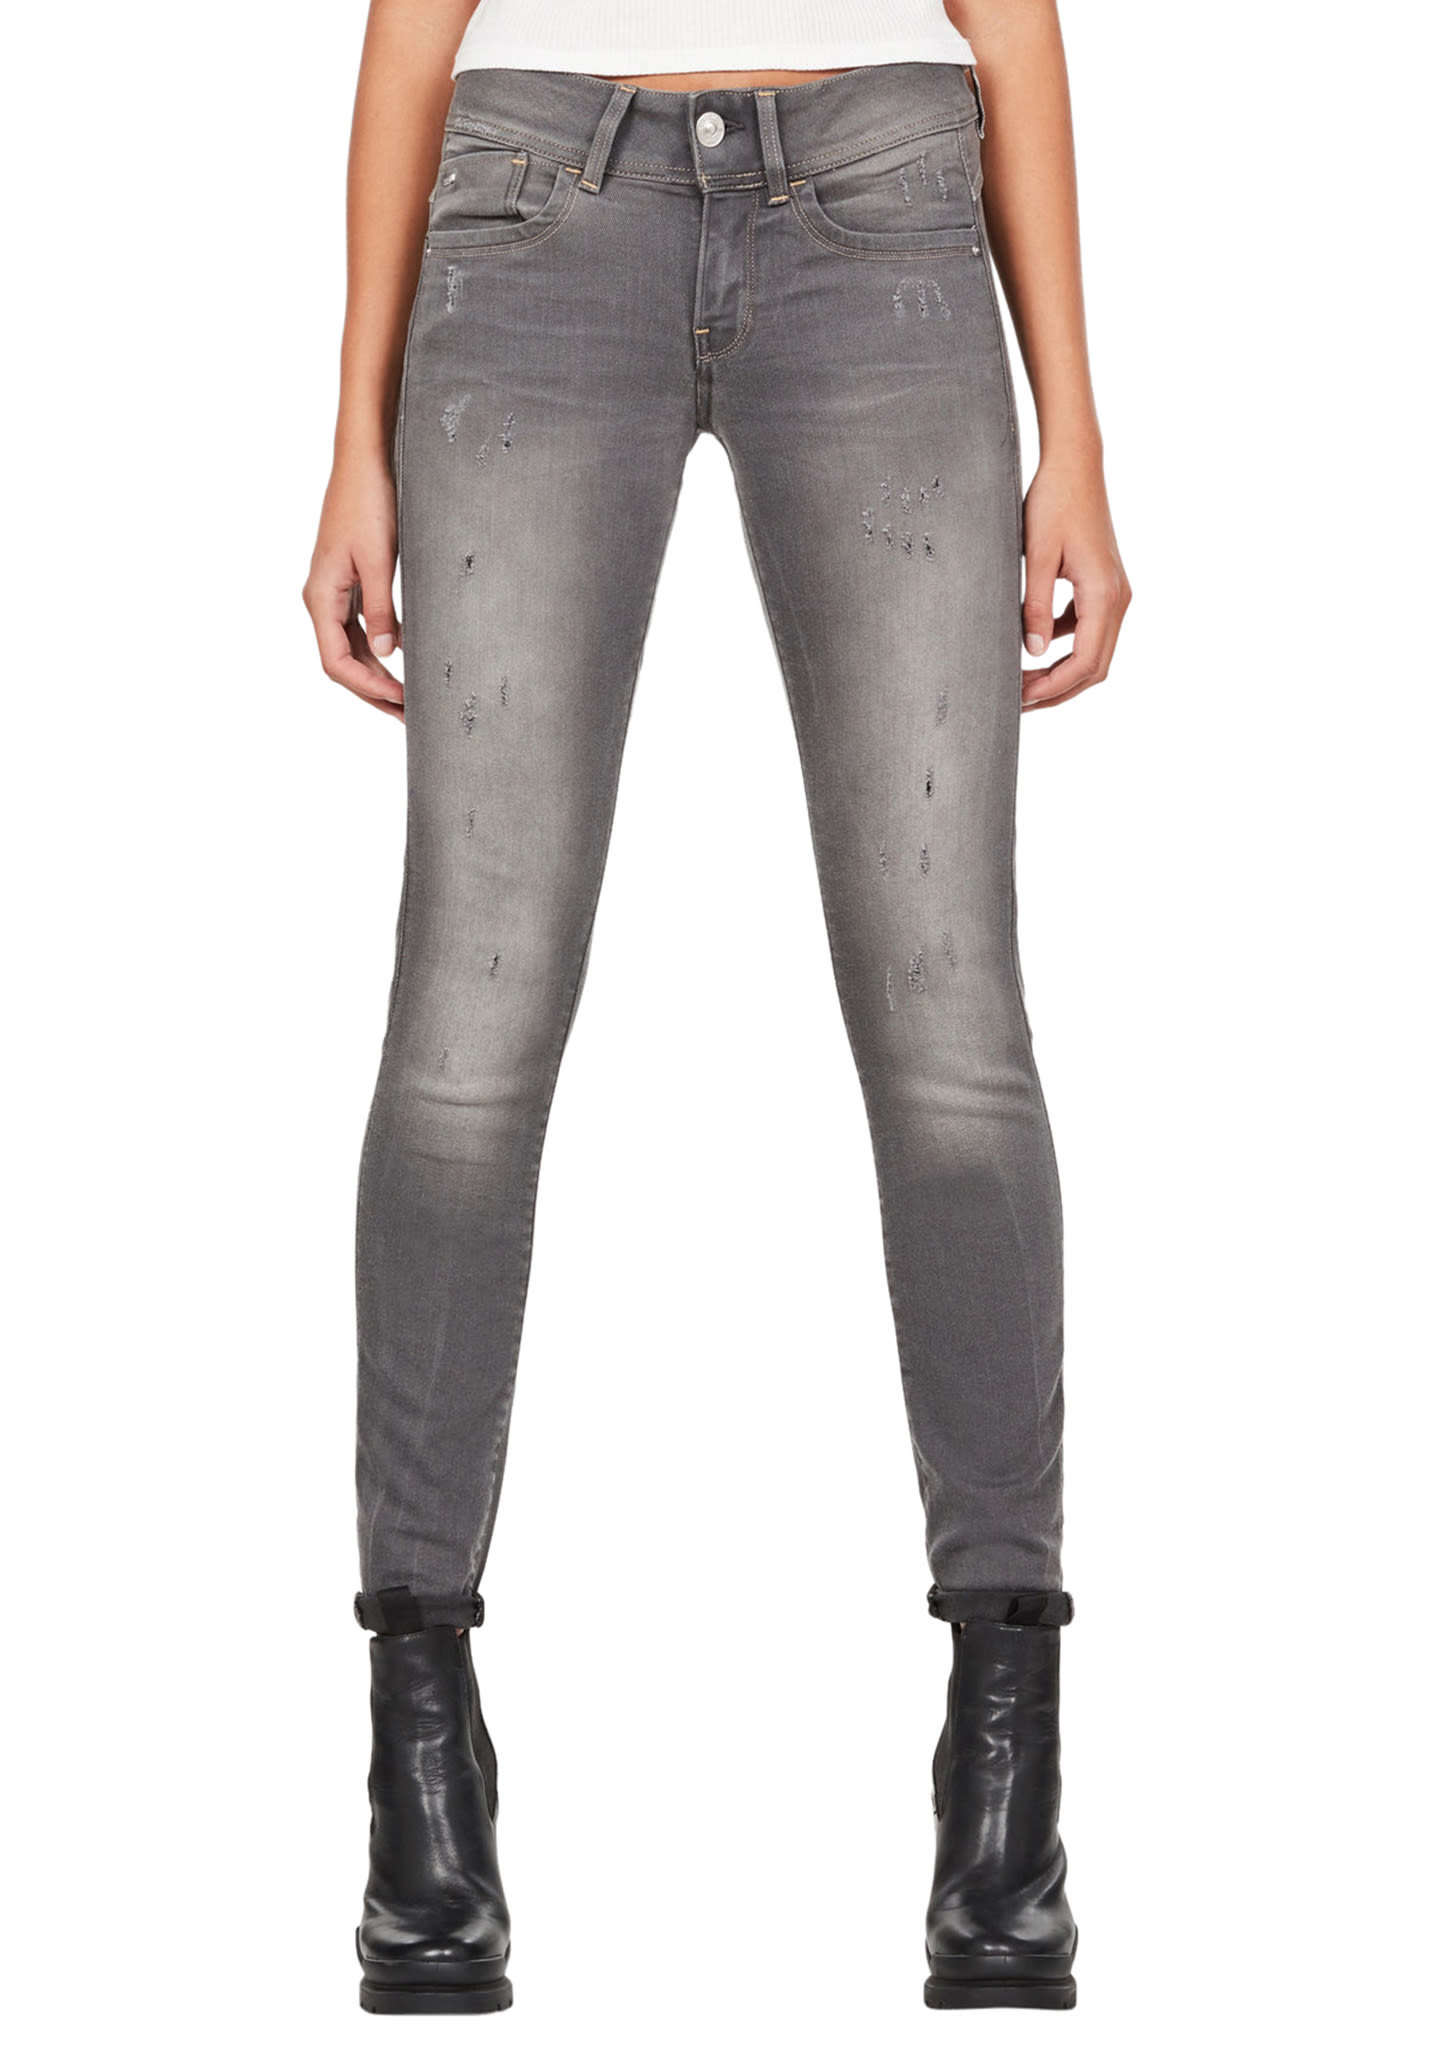 G STAR RAW Lynn Mid Skinny New Slander Grey R Superstretch Jeans für Damen Grau